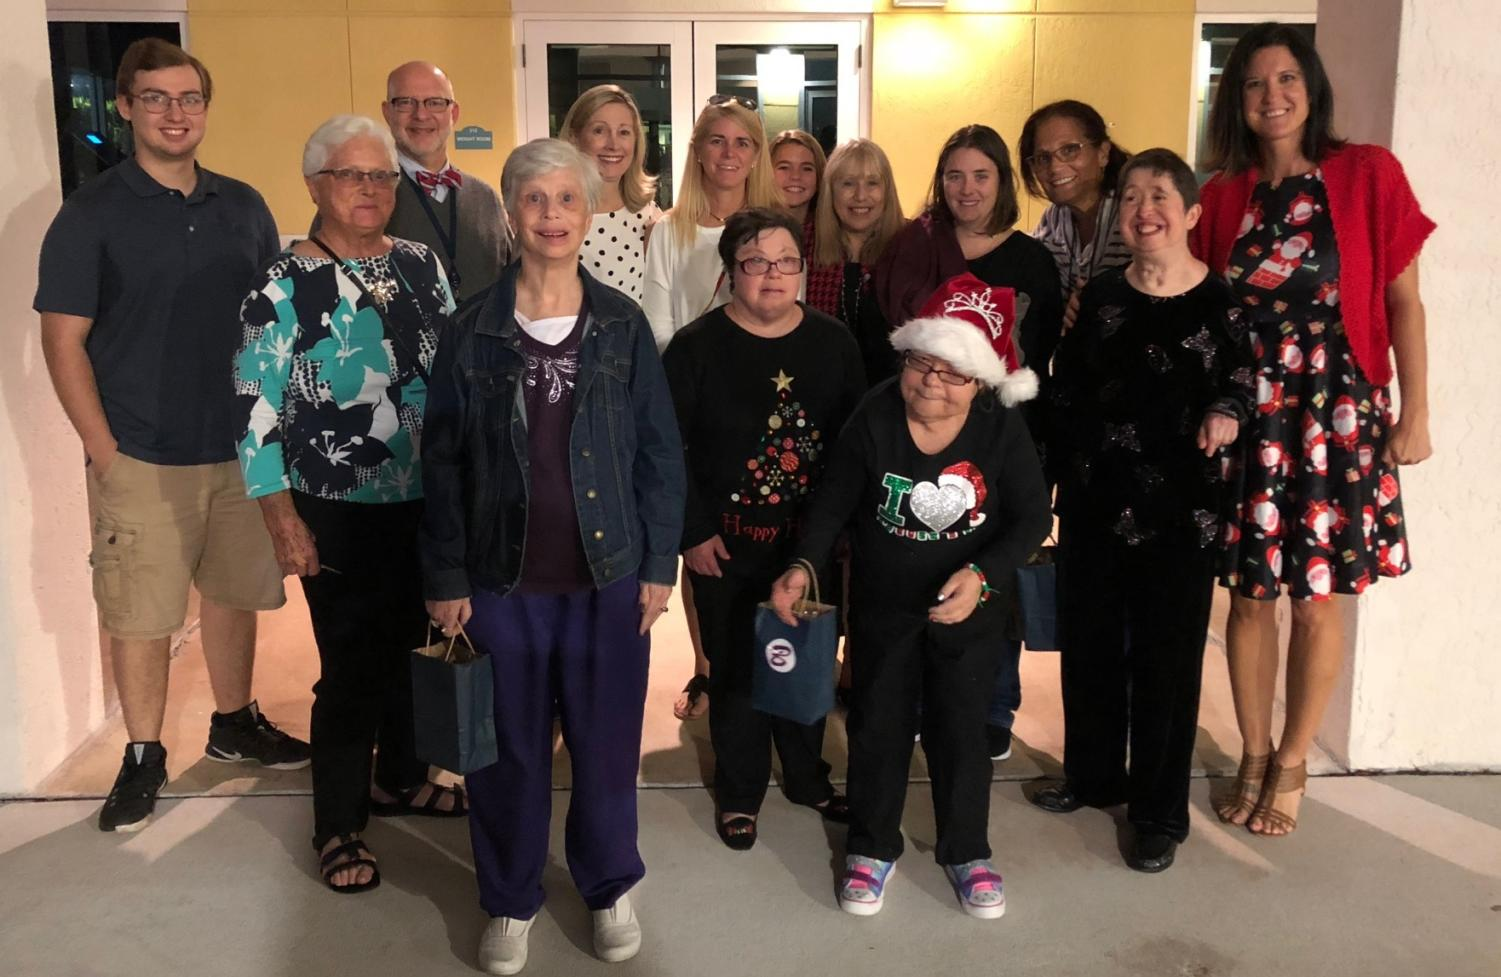 TBS students and faculty help out members of the Palm Beach Habilitation Center on Friday, December 7.